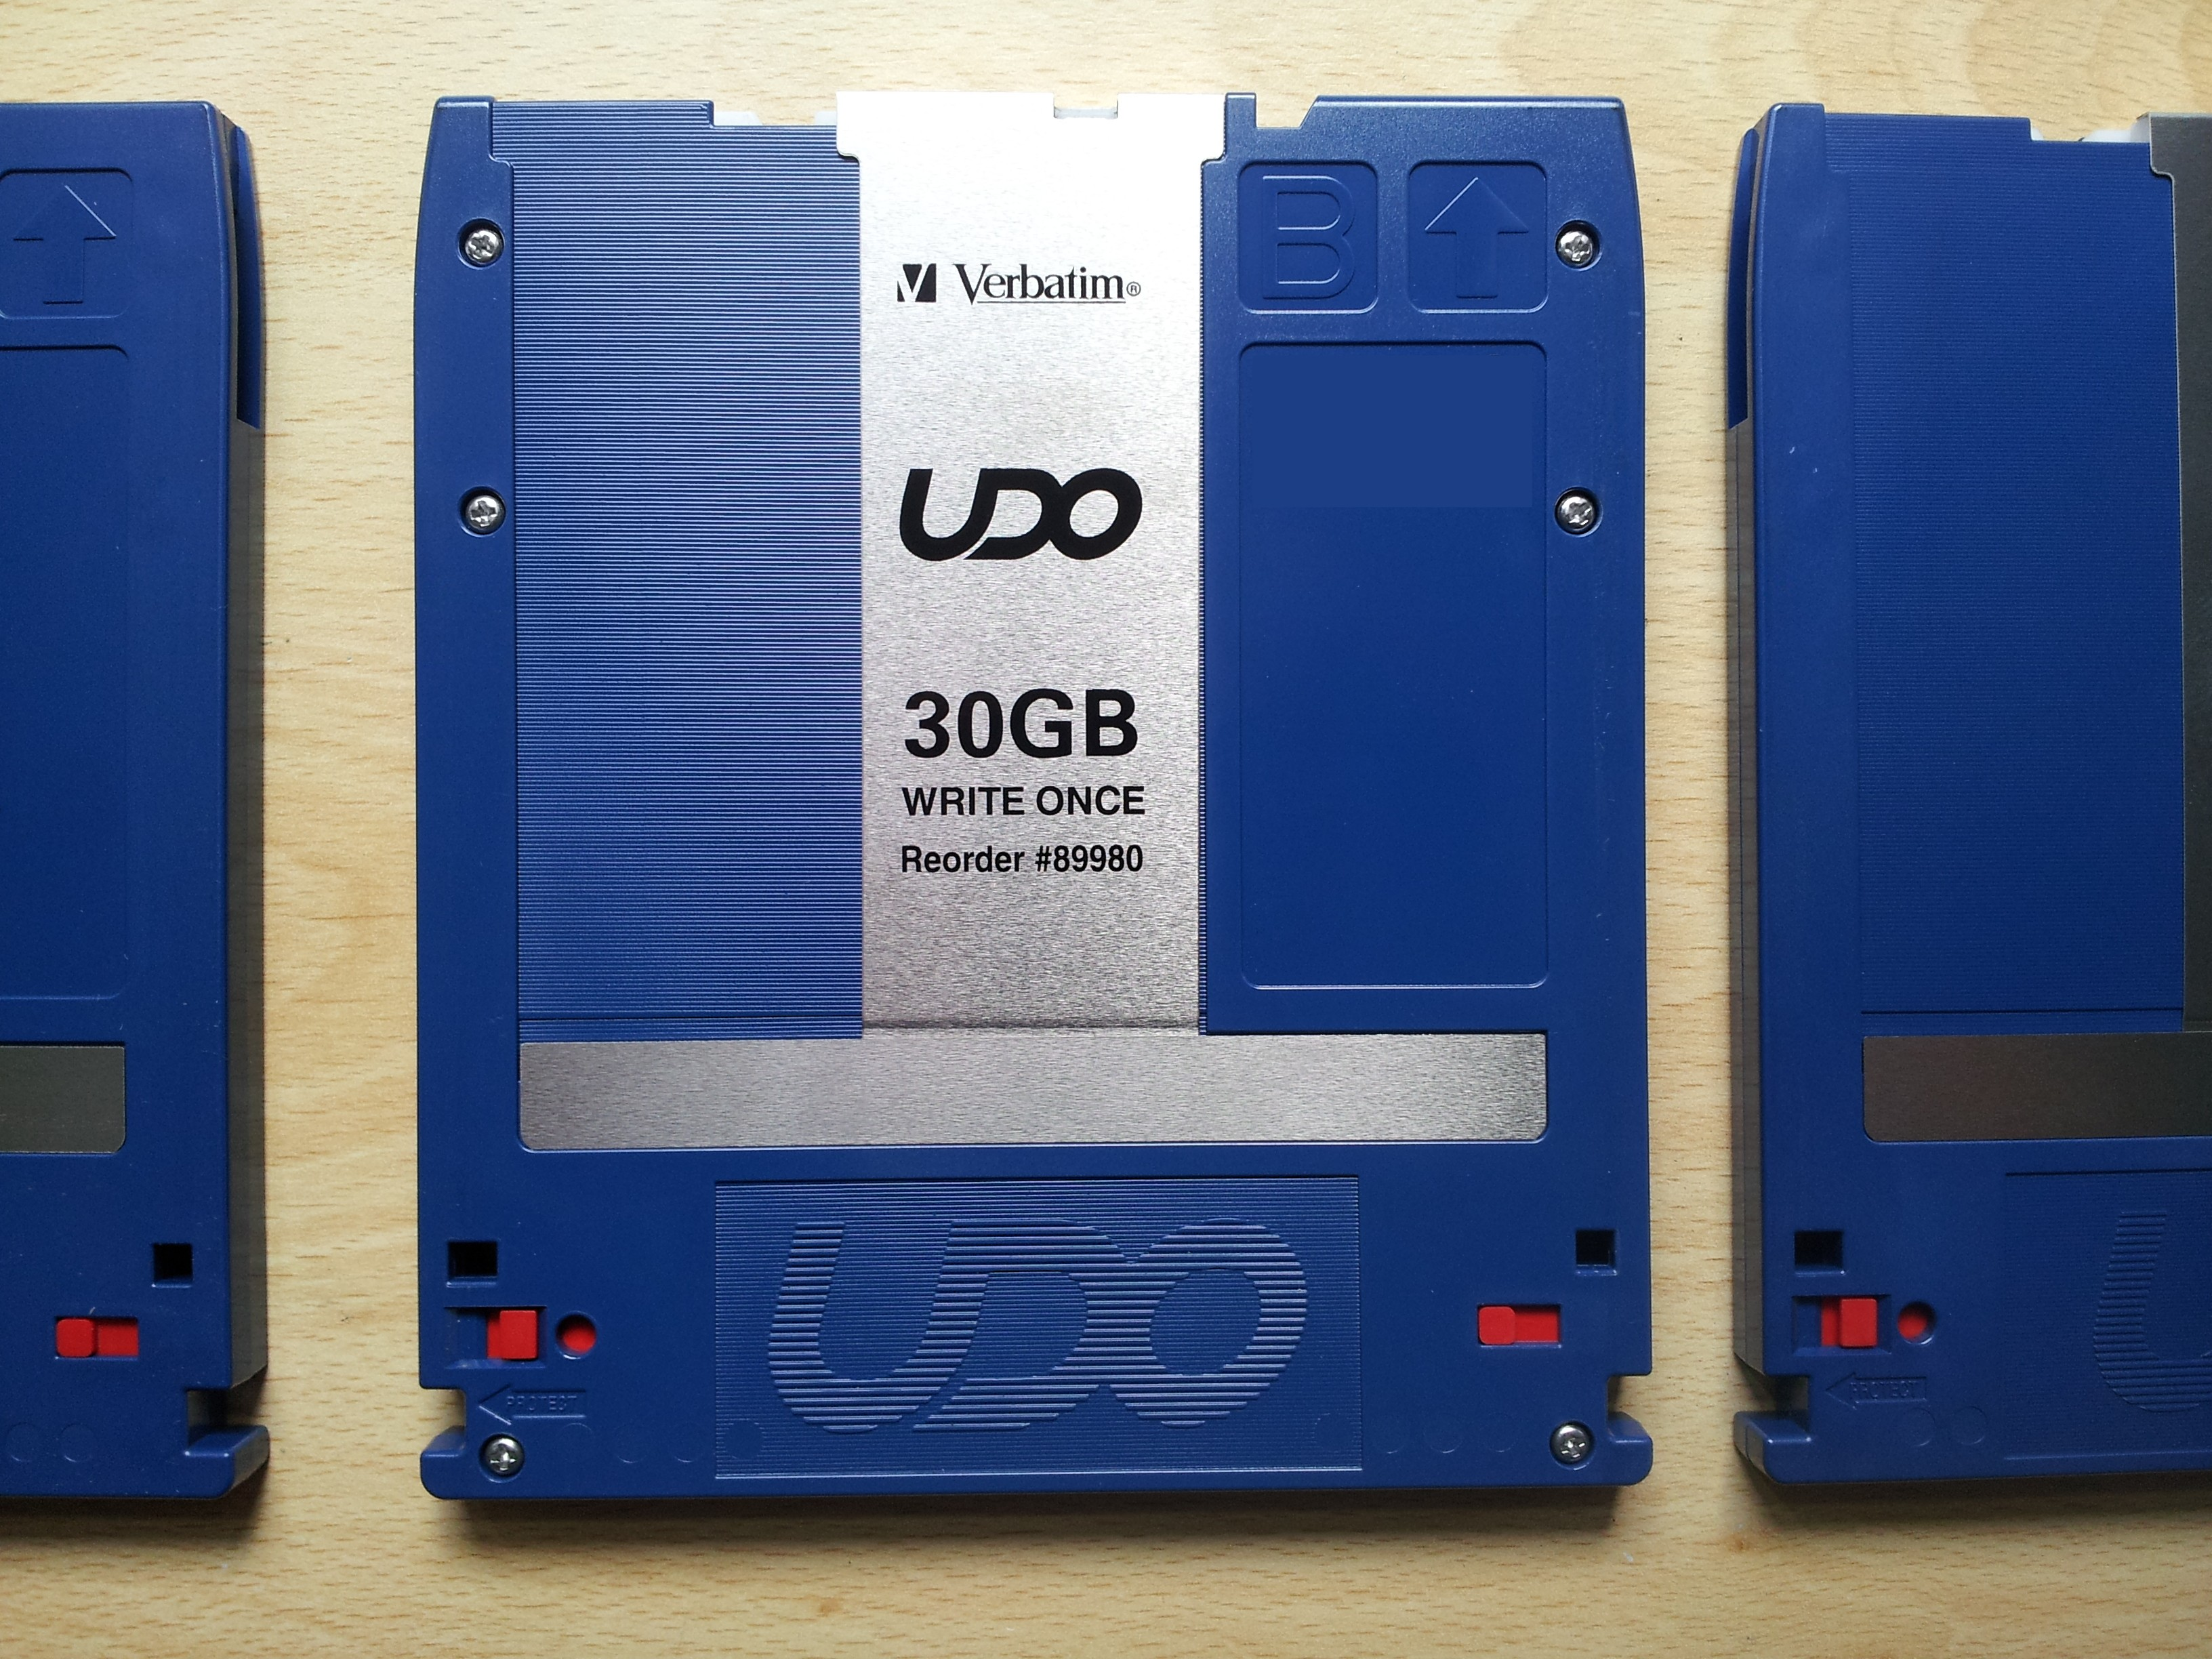 30GB UDO disk by Verbatim  - the disks look very like MO disks except they are predominantly blue and hold far more data - 30GB or 60GB of files.